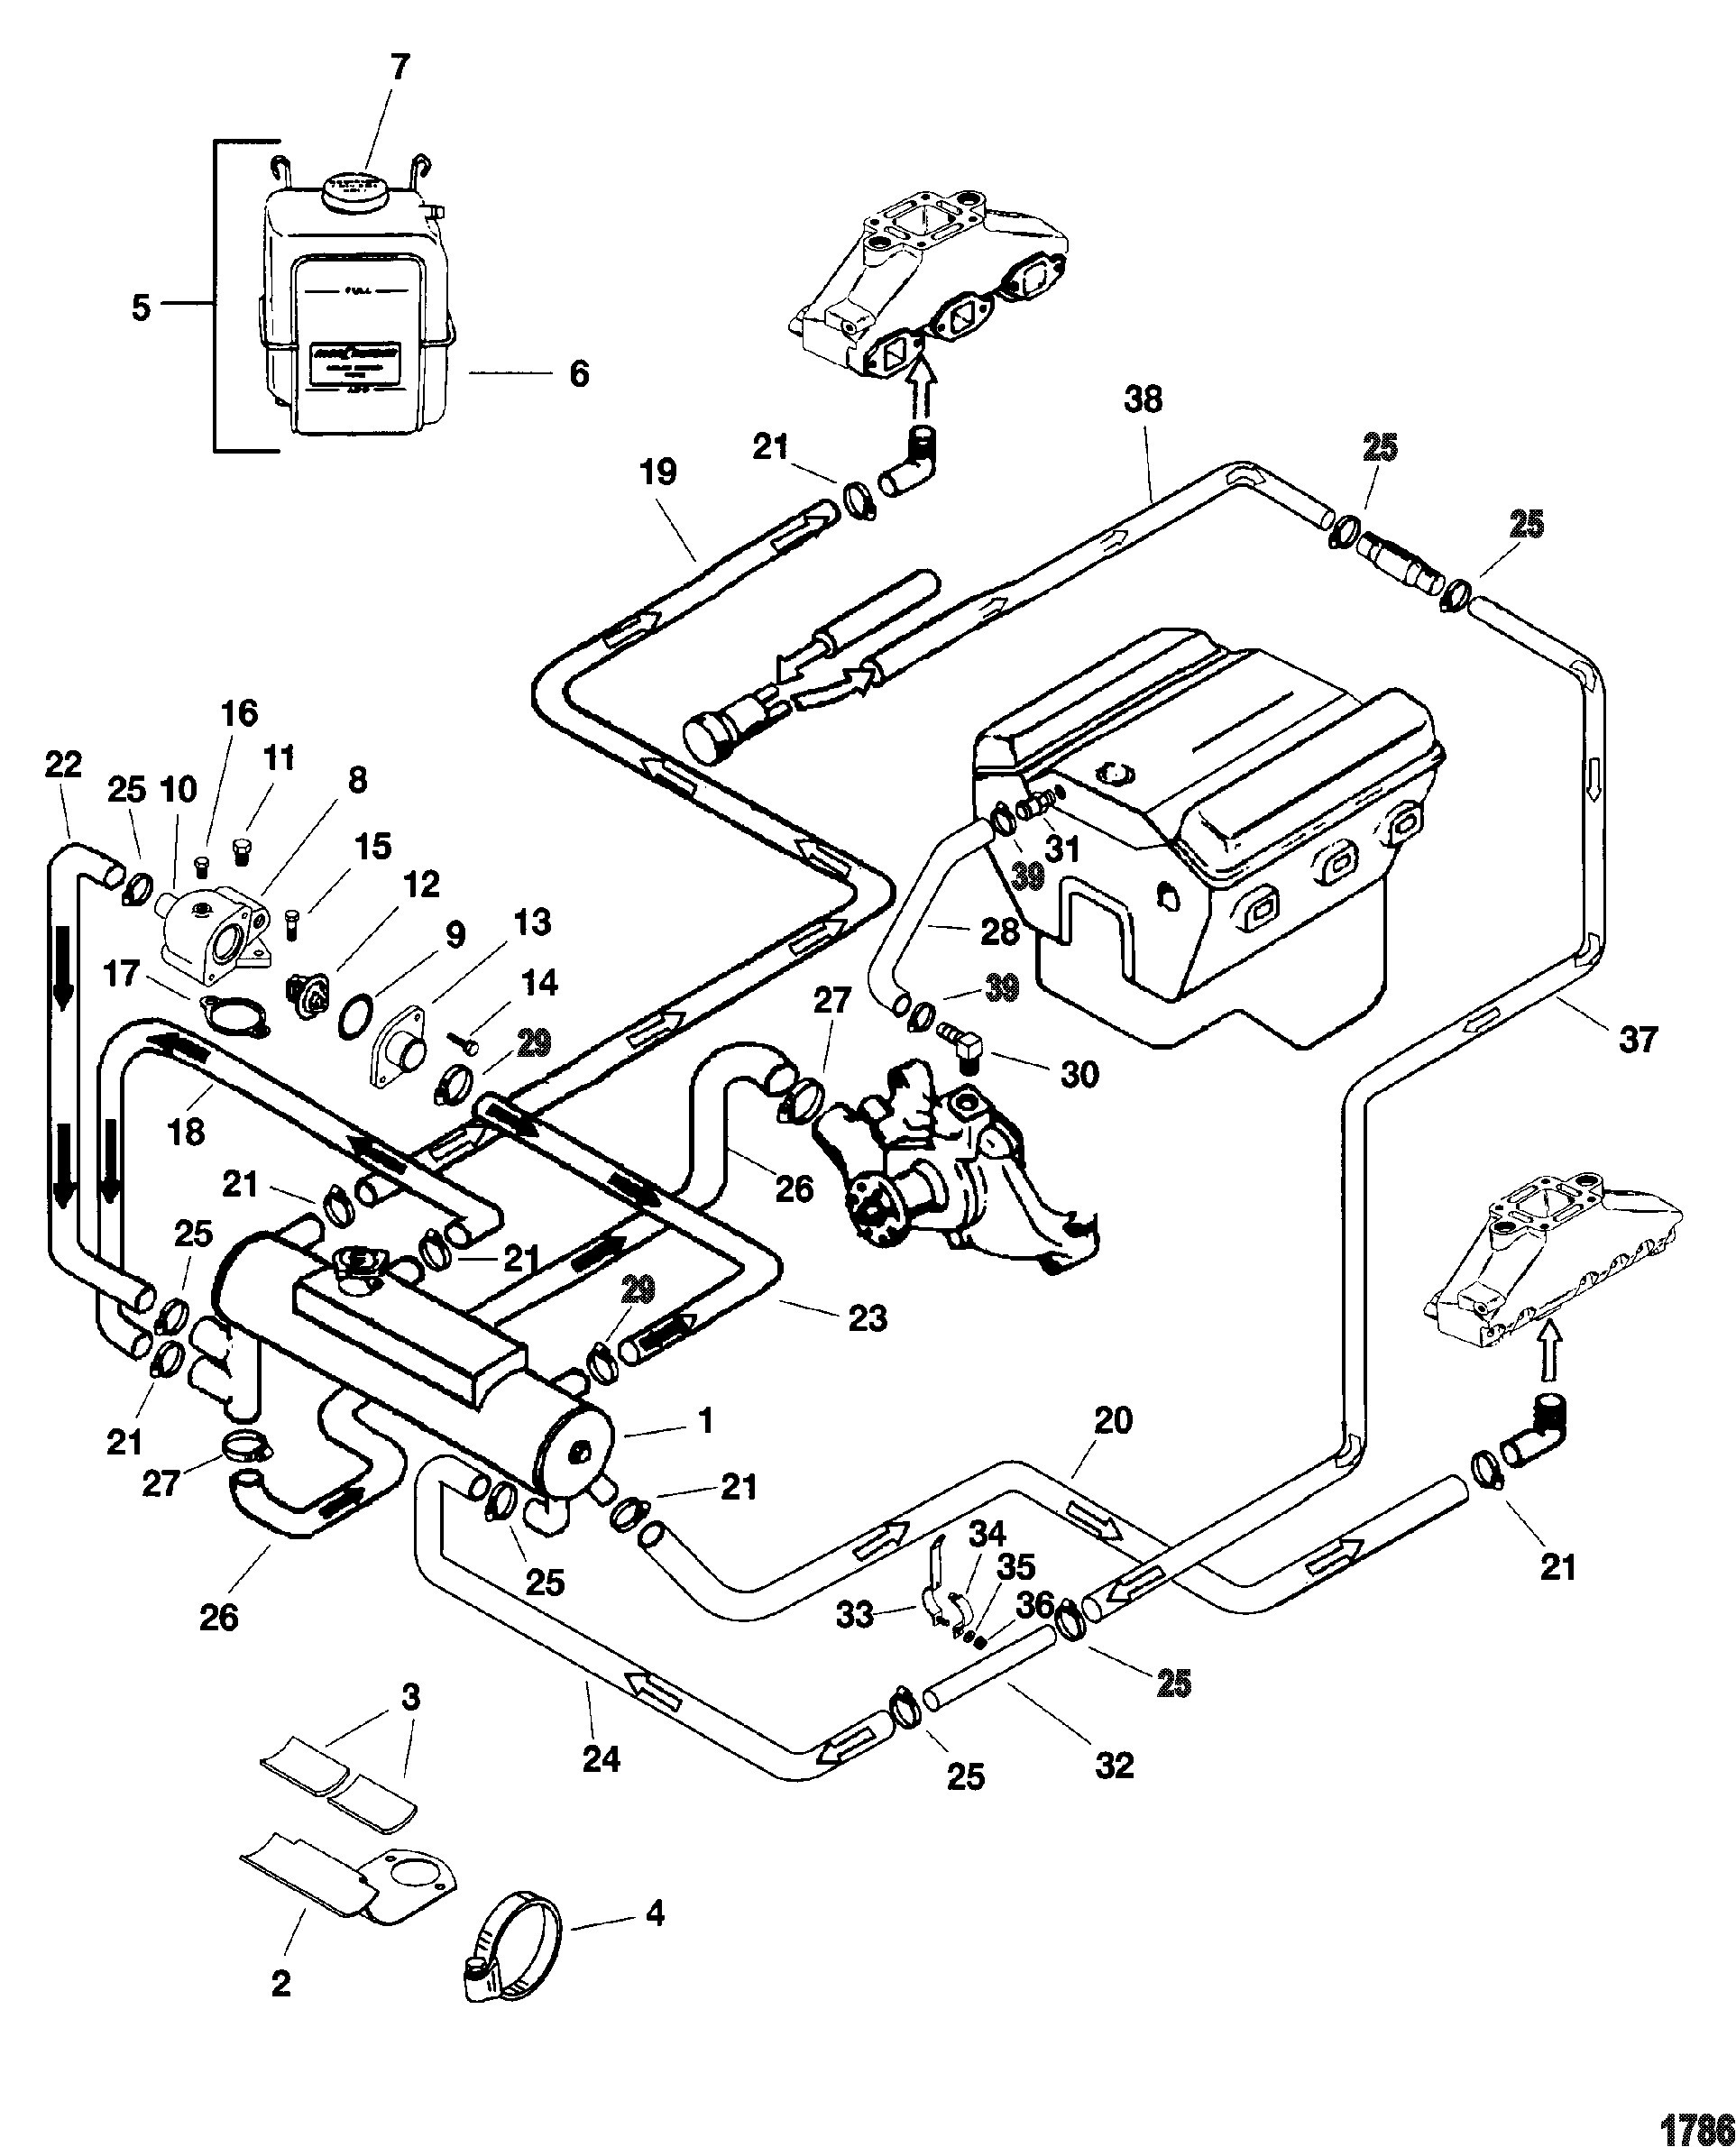 Toyota Avalon Exhaust System Diagram Reinvent Your Wiring Camry 2016 Tundra Trusted Rh Dafpods Co 2003 Highlander